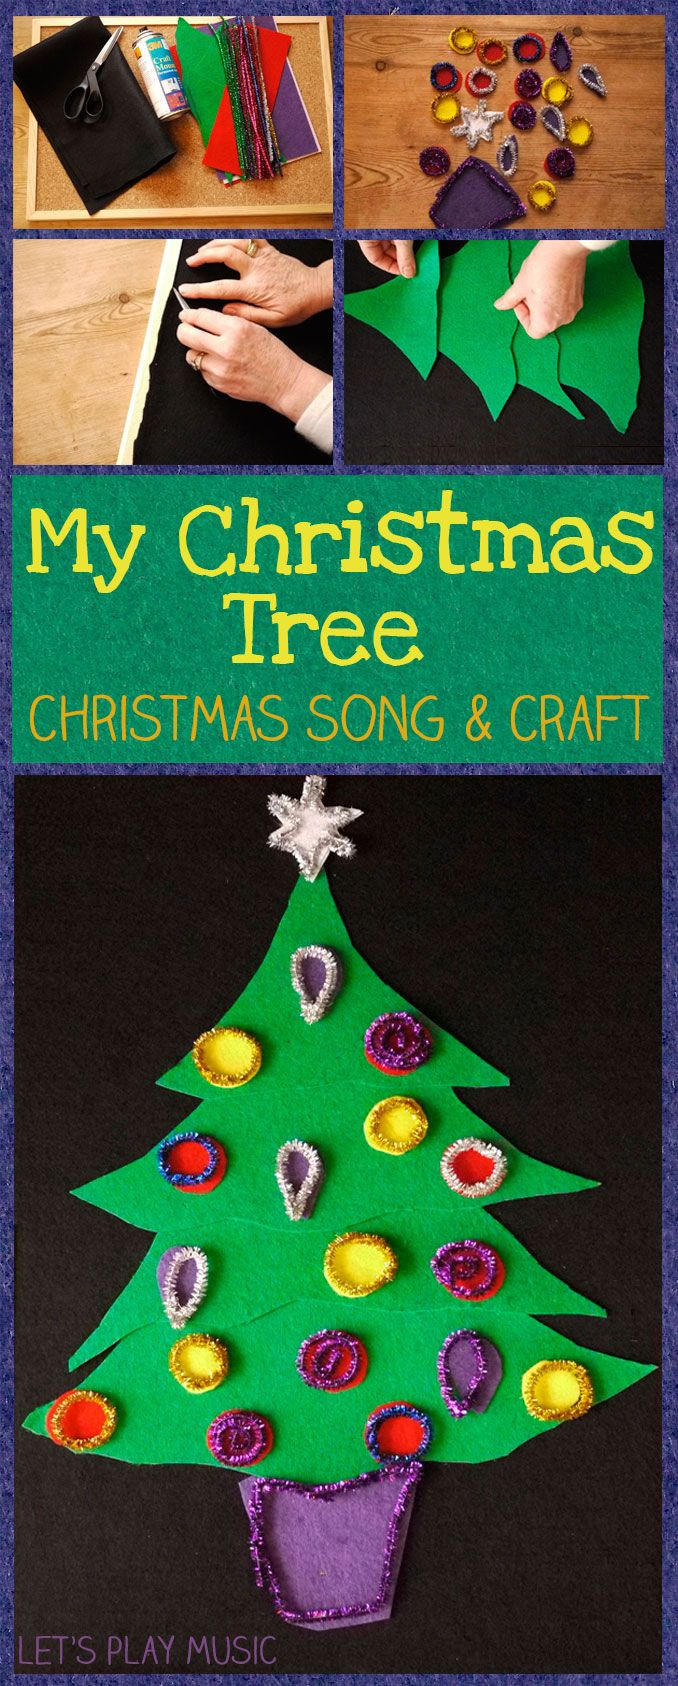 Musical christmas ornaments that play music - Let S Play Music My Christmas Tree Kids Songs For Christmas A Piggy